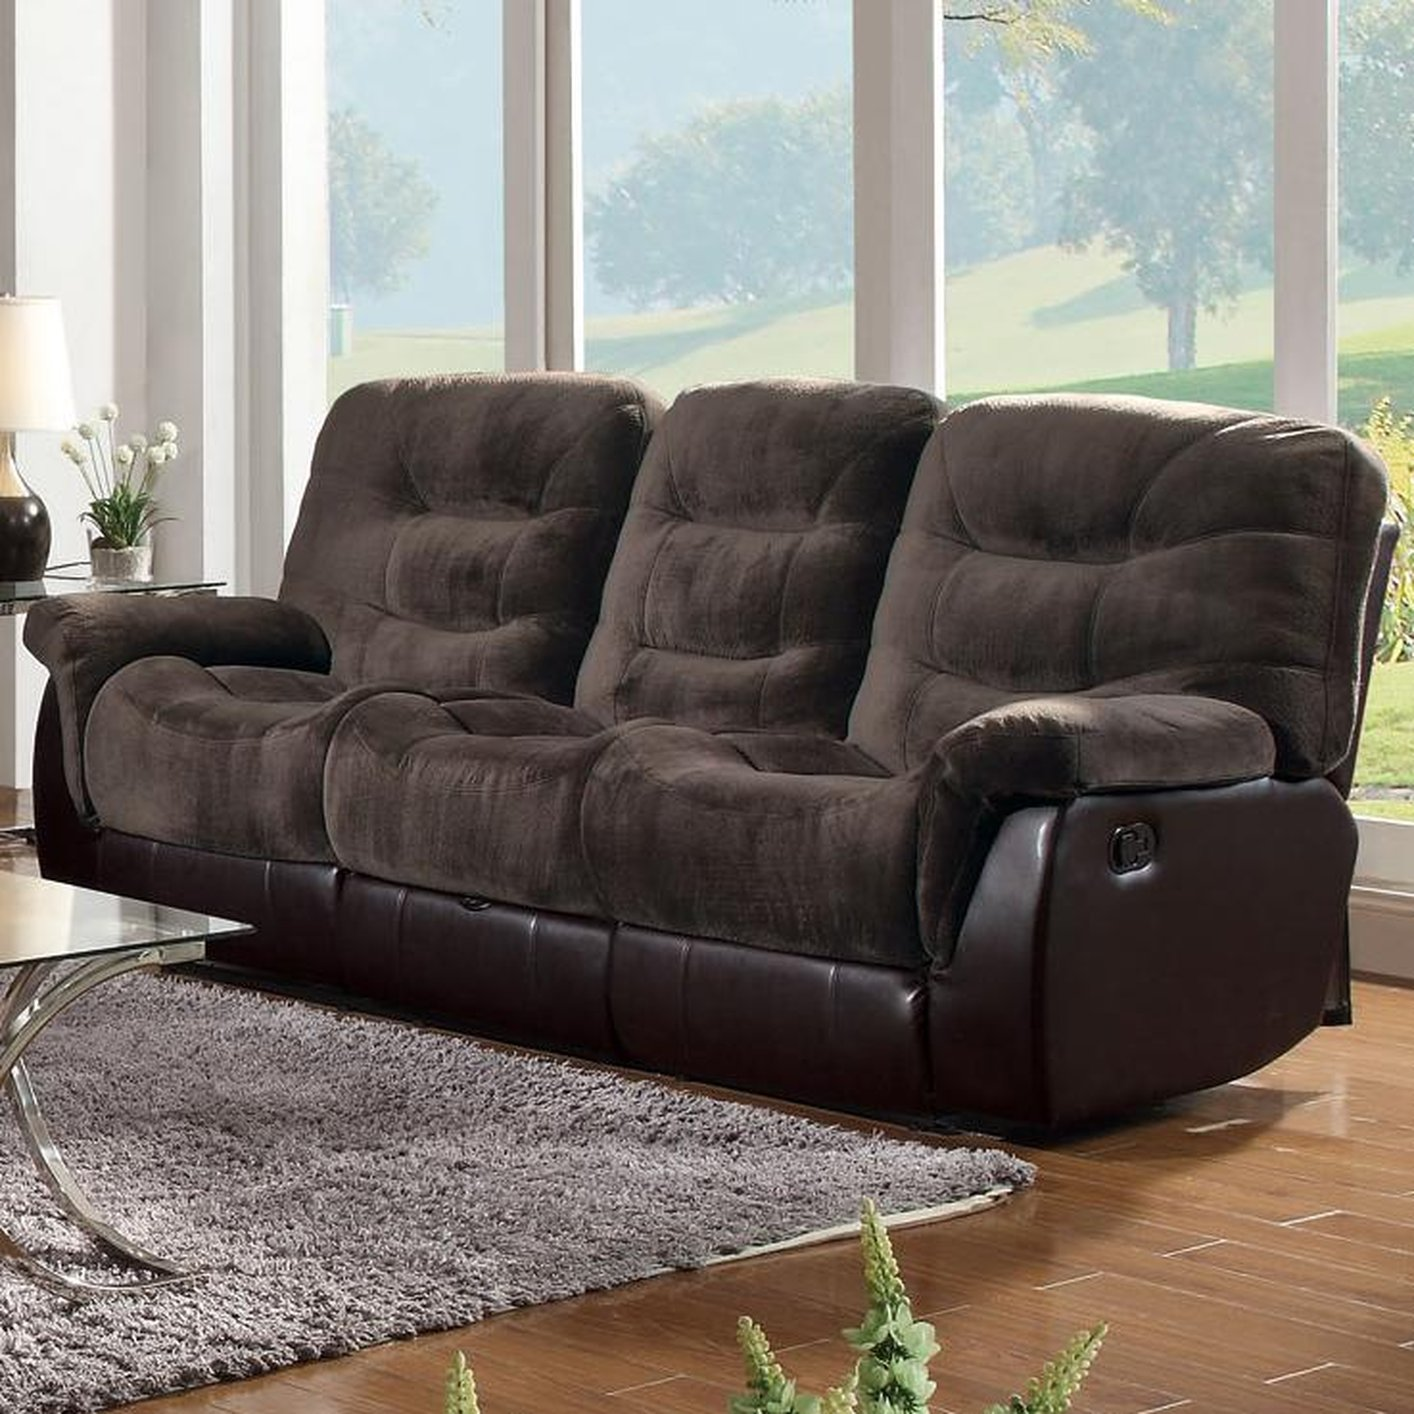 Brown Fabric Reclining Sofa & Brown Fabric Reclining Sofa - Steal-A-Sofa Furniture Outlet Los ... islam-shia.org